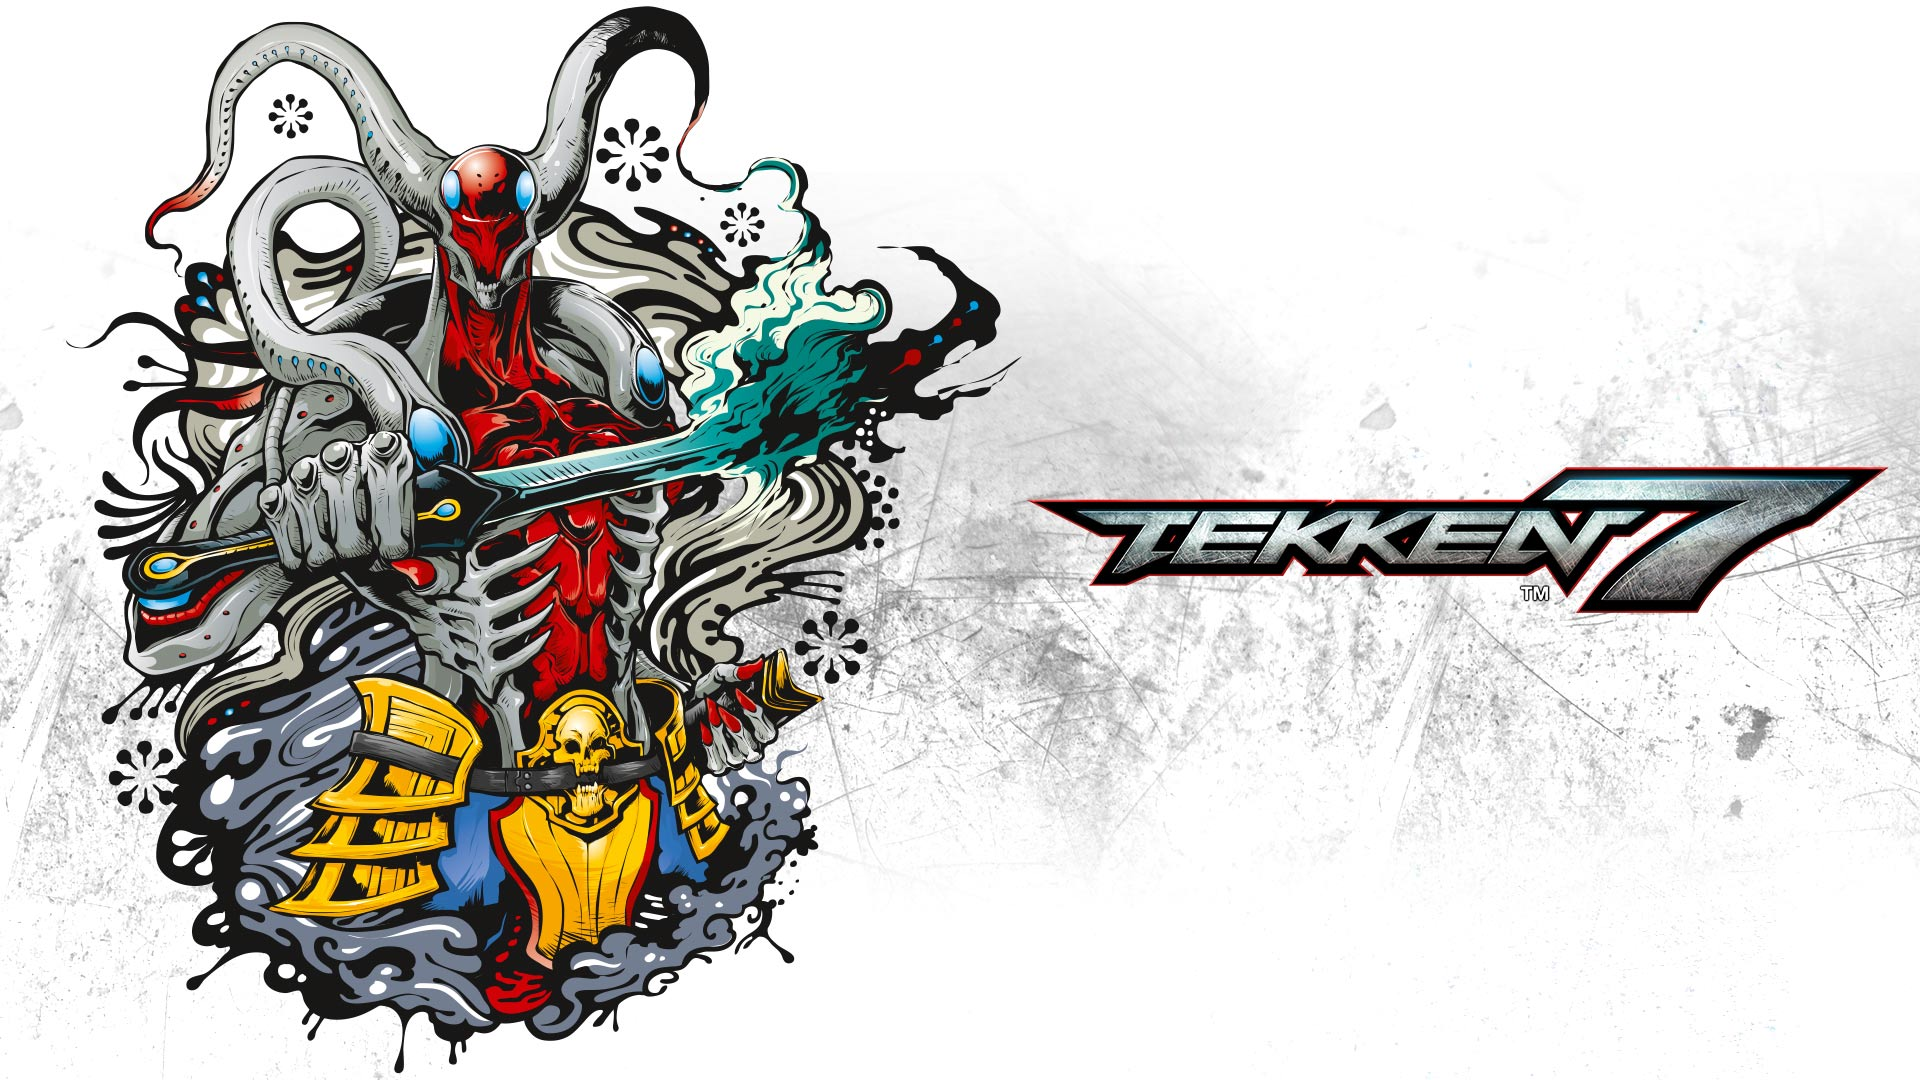 Tekken 7 Wallpaper 006 Yoshimitsu Wallpapers Ethereal Games